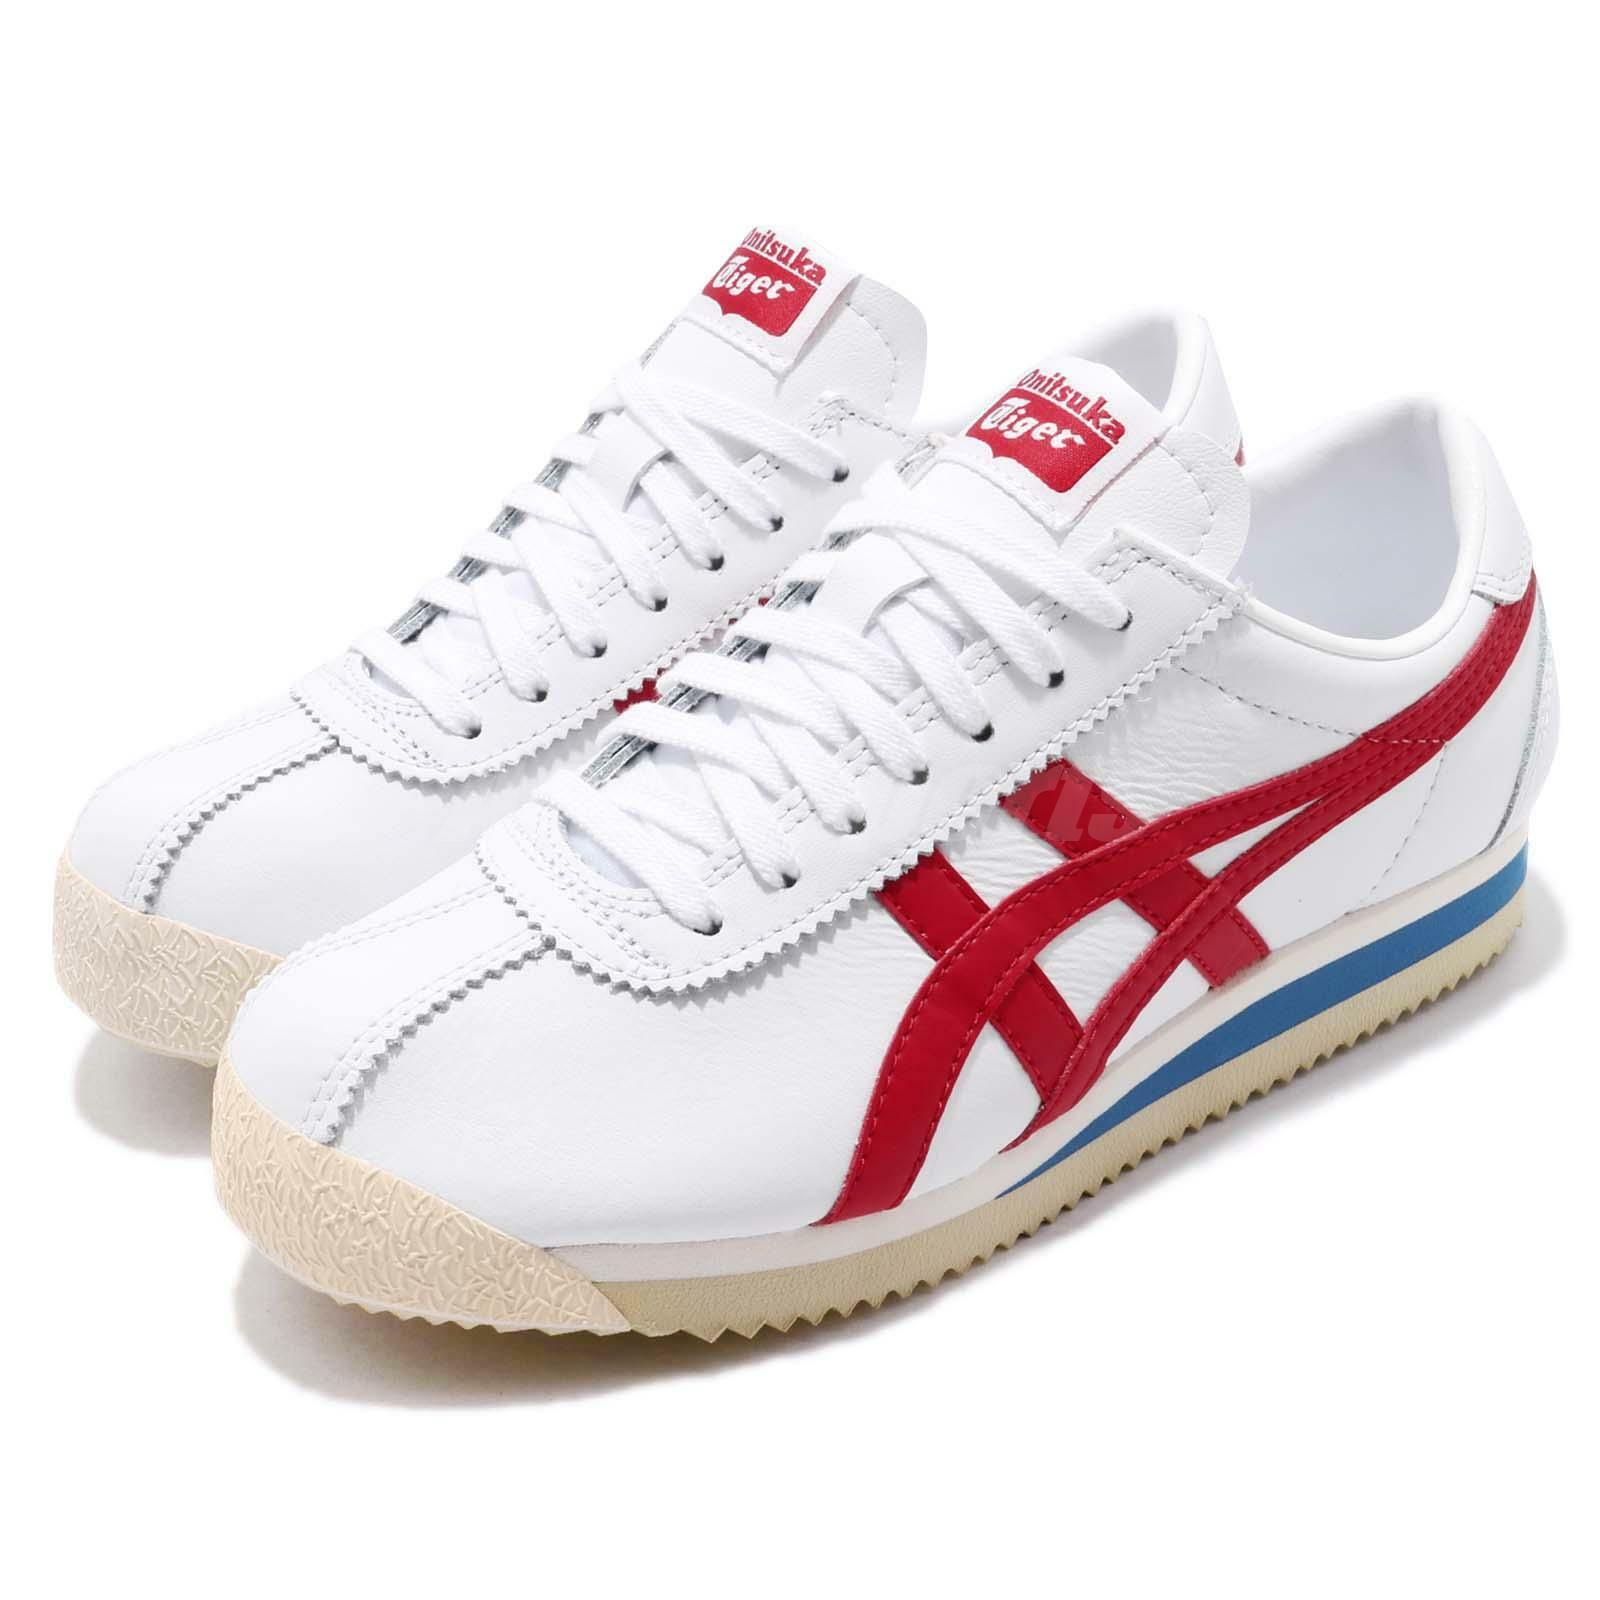 Asics Onitsuka Tiger Corsair White  Red bluee Mens Retro Running shoes D713L-0123  new products novelty items